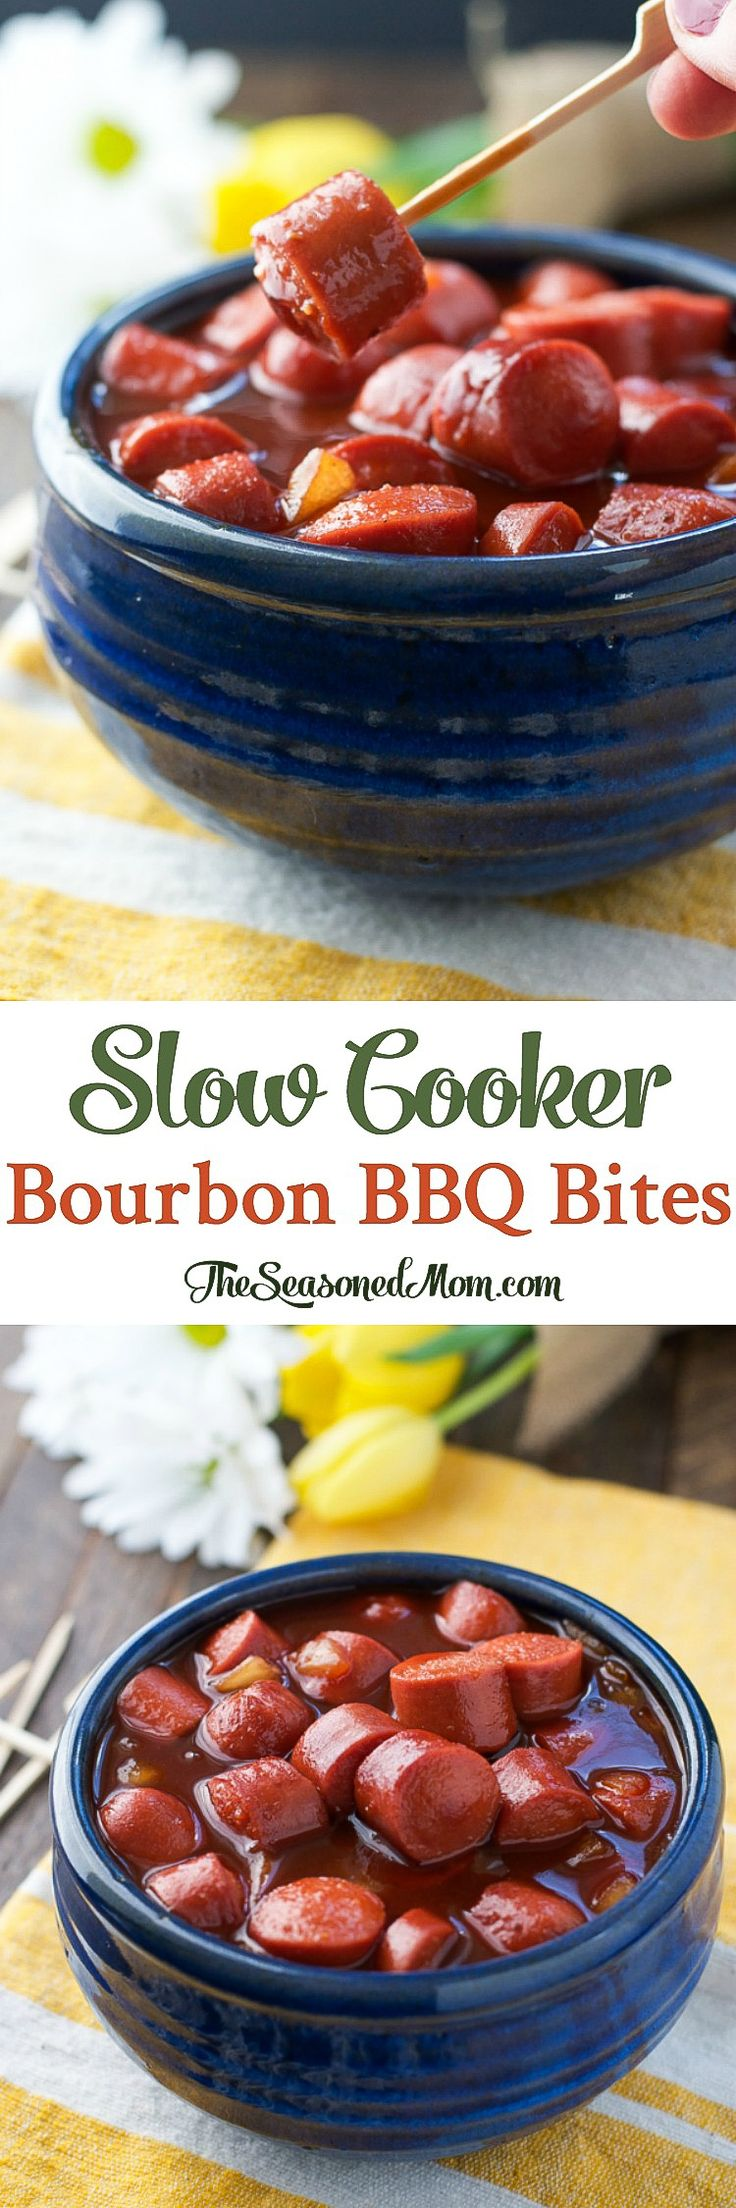 These 10-minute Slow Cooker Bourbon Barbecue Bites are crowd-pleasing easy appetizers with Southern charm! Perfect for Game Day! #ad #TabletopTailgate